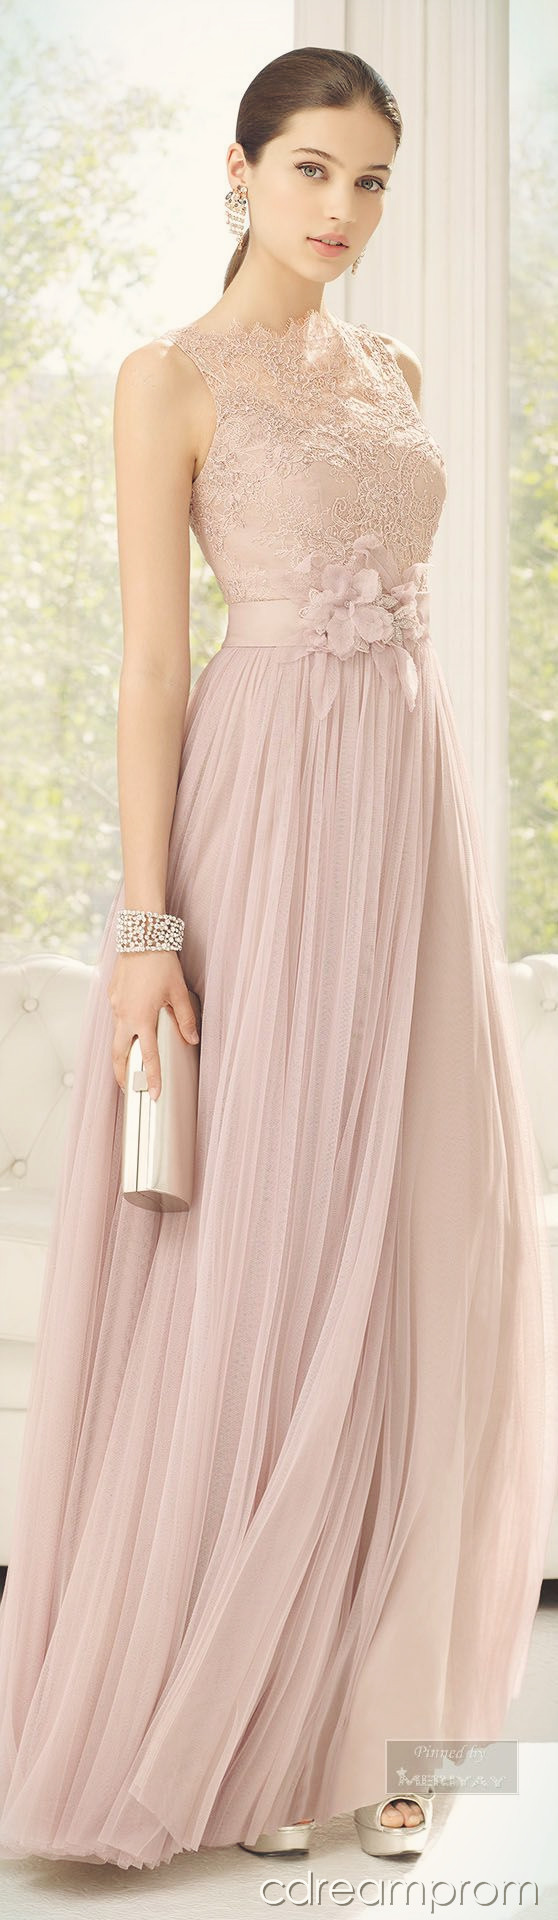 elegant prom dress prom gown | Dresses | Pinterest | Vestiditos ...